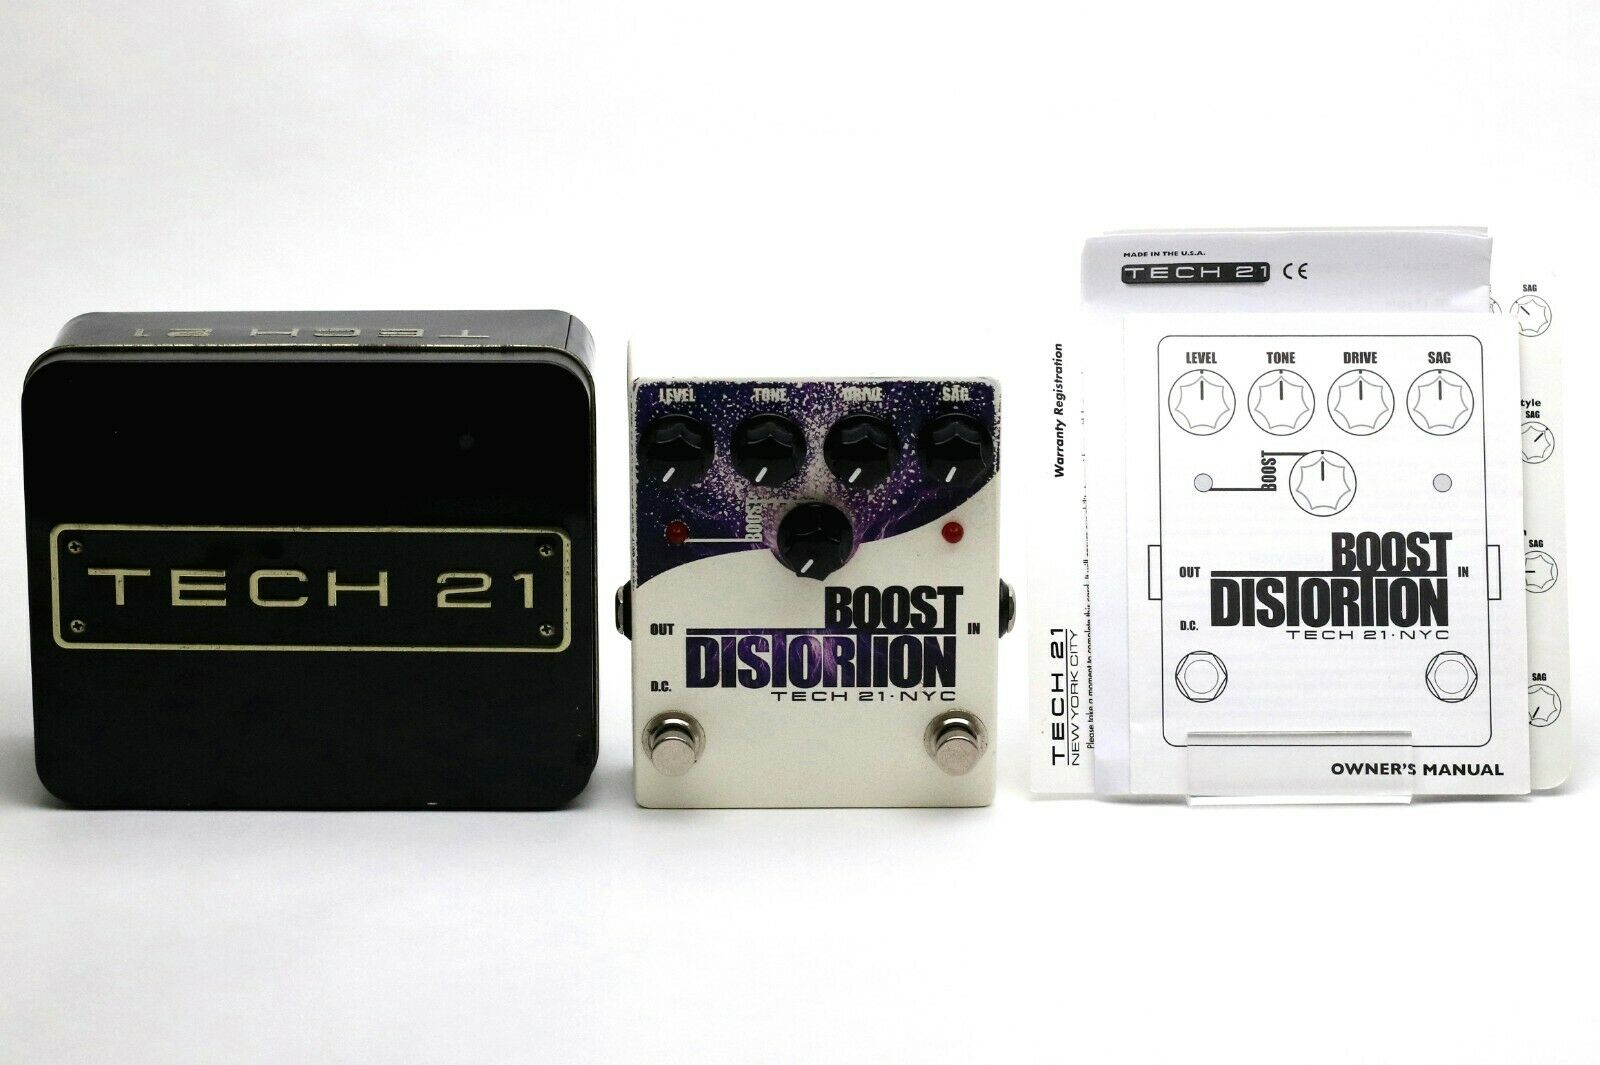 TECH 21 NYC BOOST DISTORTION Guitar Effect Pedal Made in USA TECH21